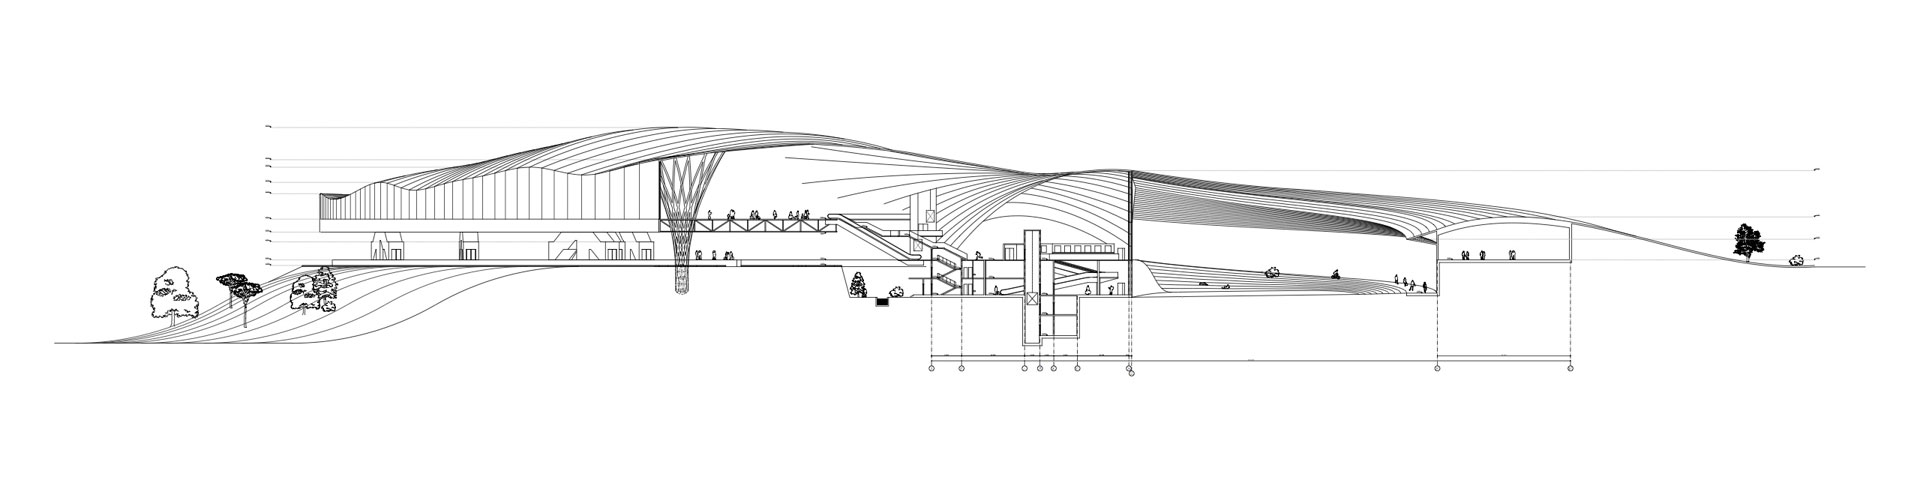 architectural section of transport hub